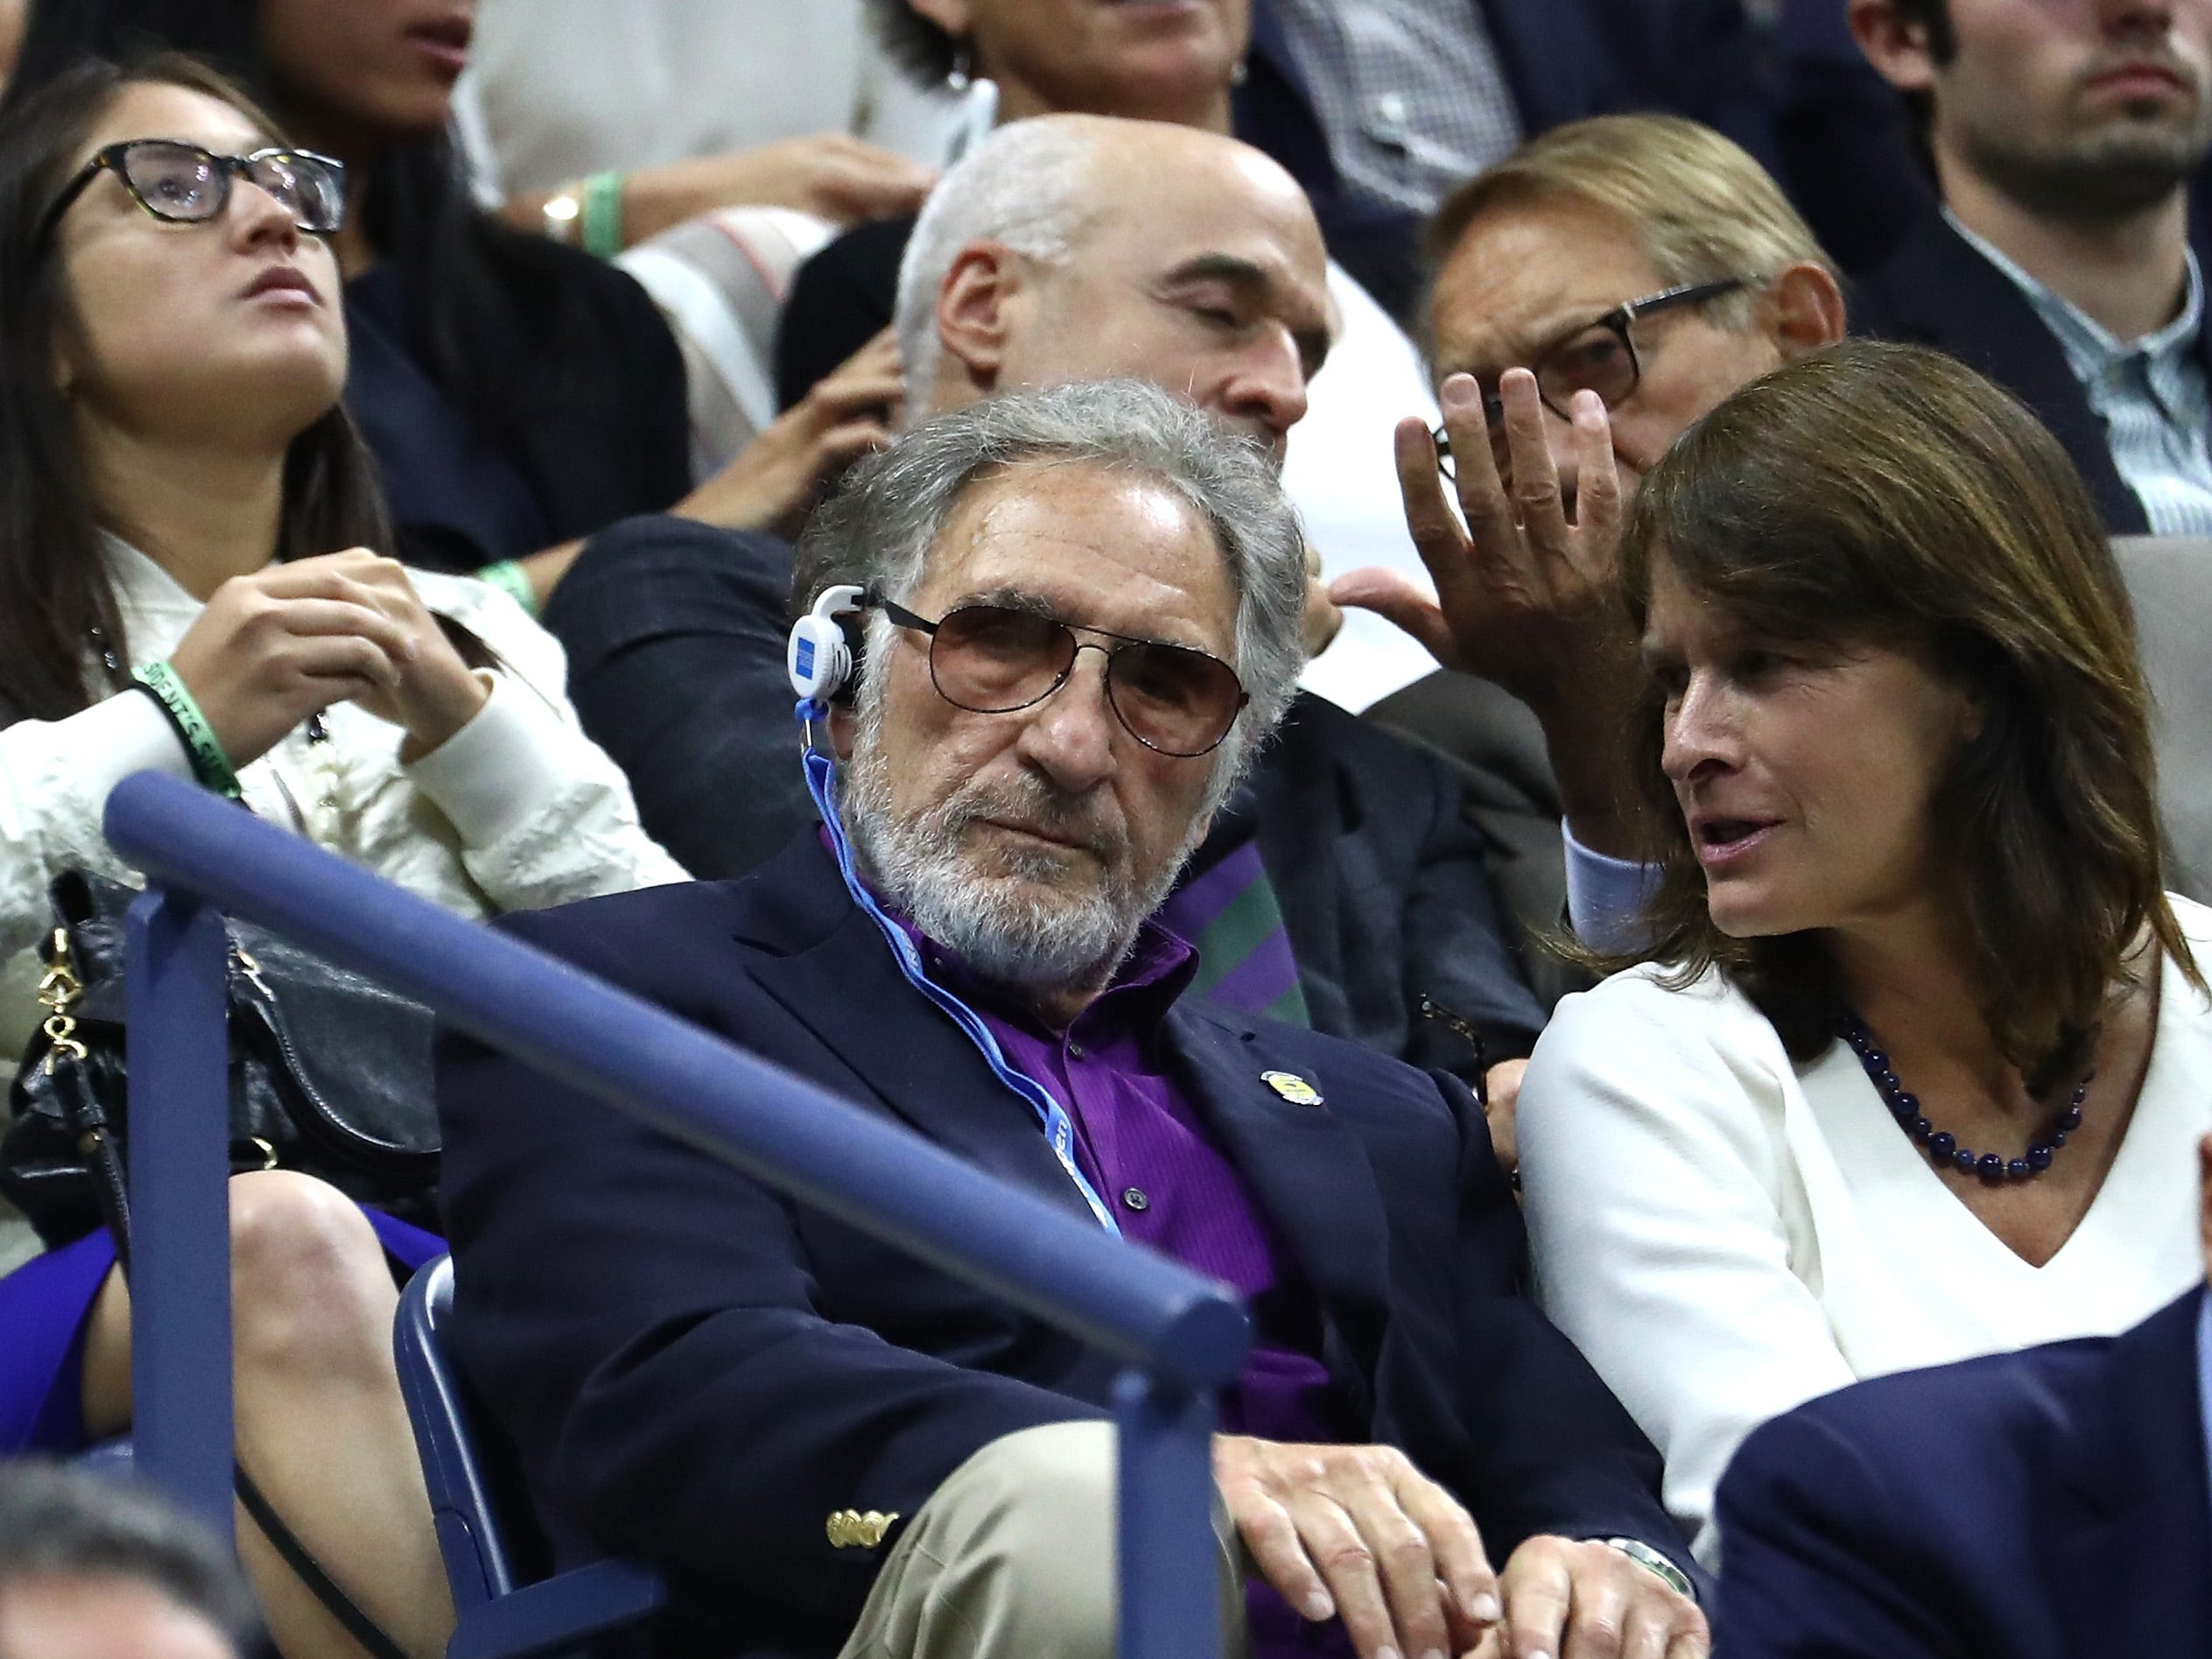 Actor Judd Hirsch, left, watches the men's final between Novak Djokovic and Juan Martin del Potro.